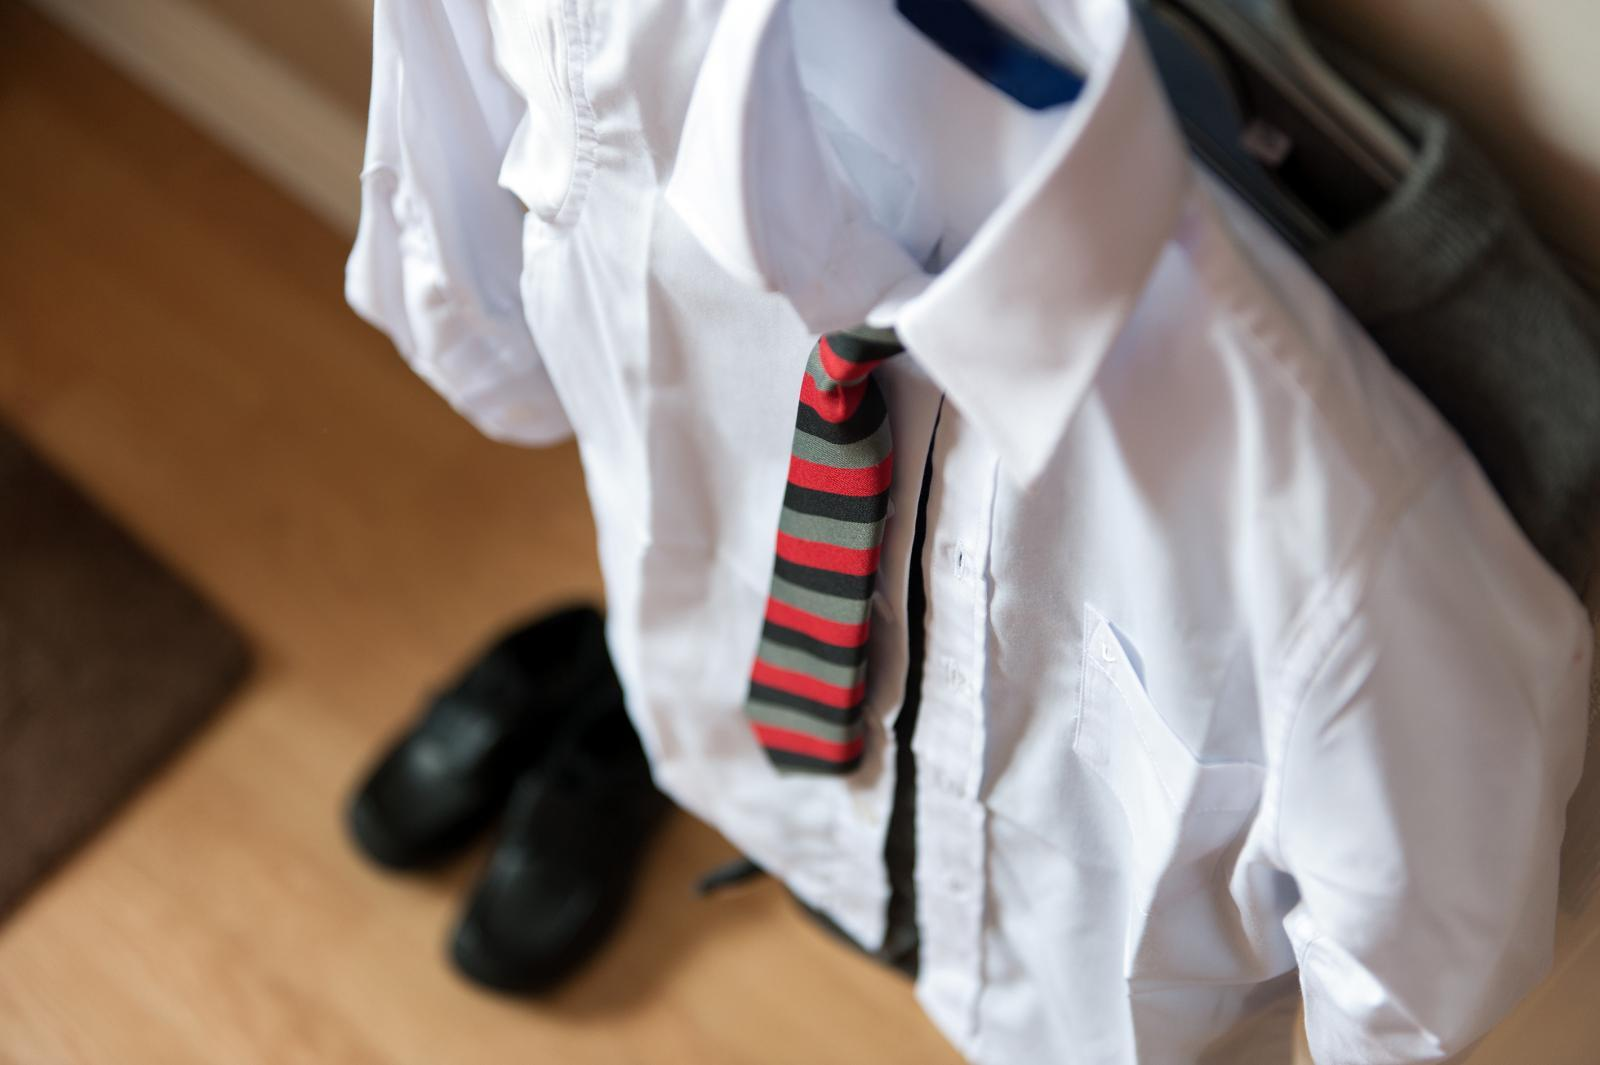 School uniform hung up - shirt and tie